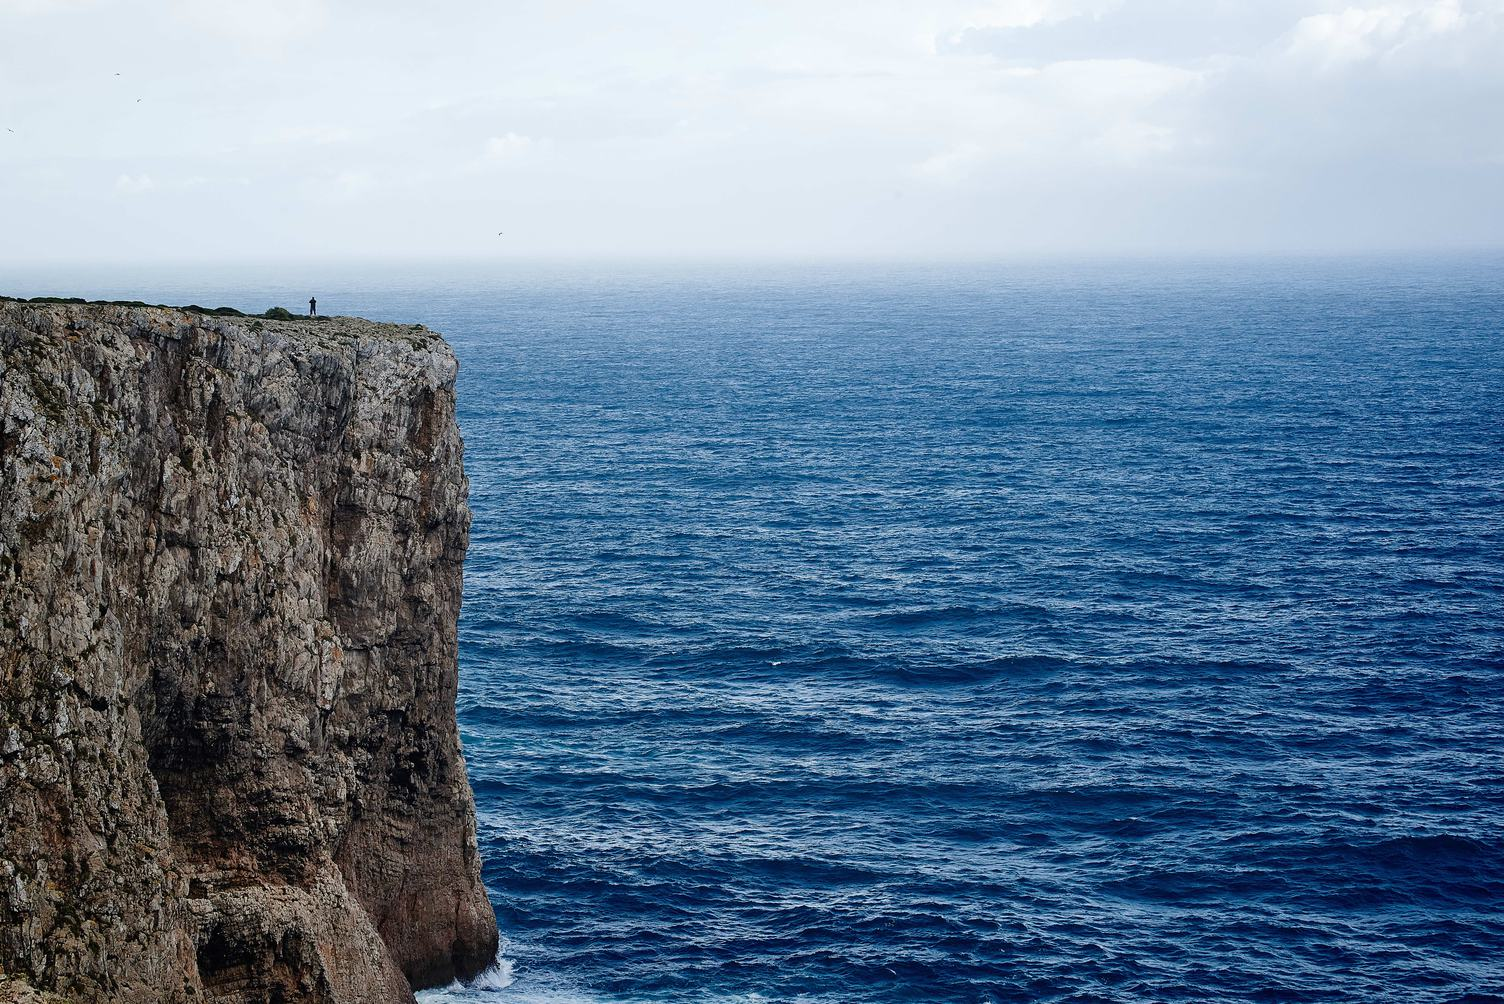 Solitary Person Standing at the Top of a Cliff